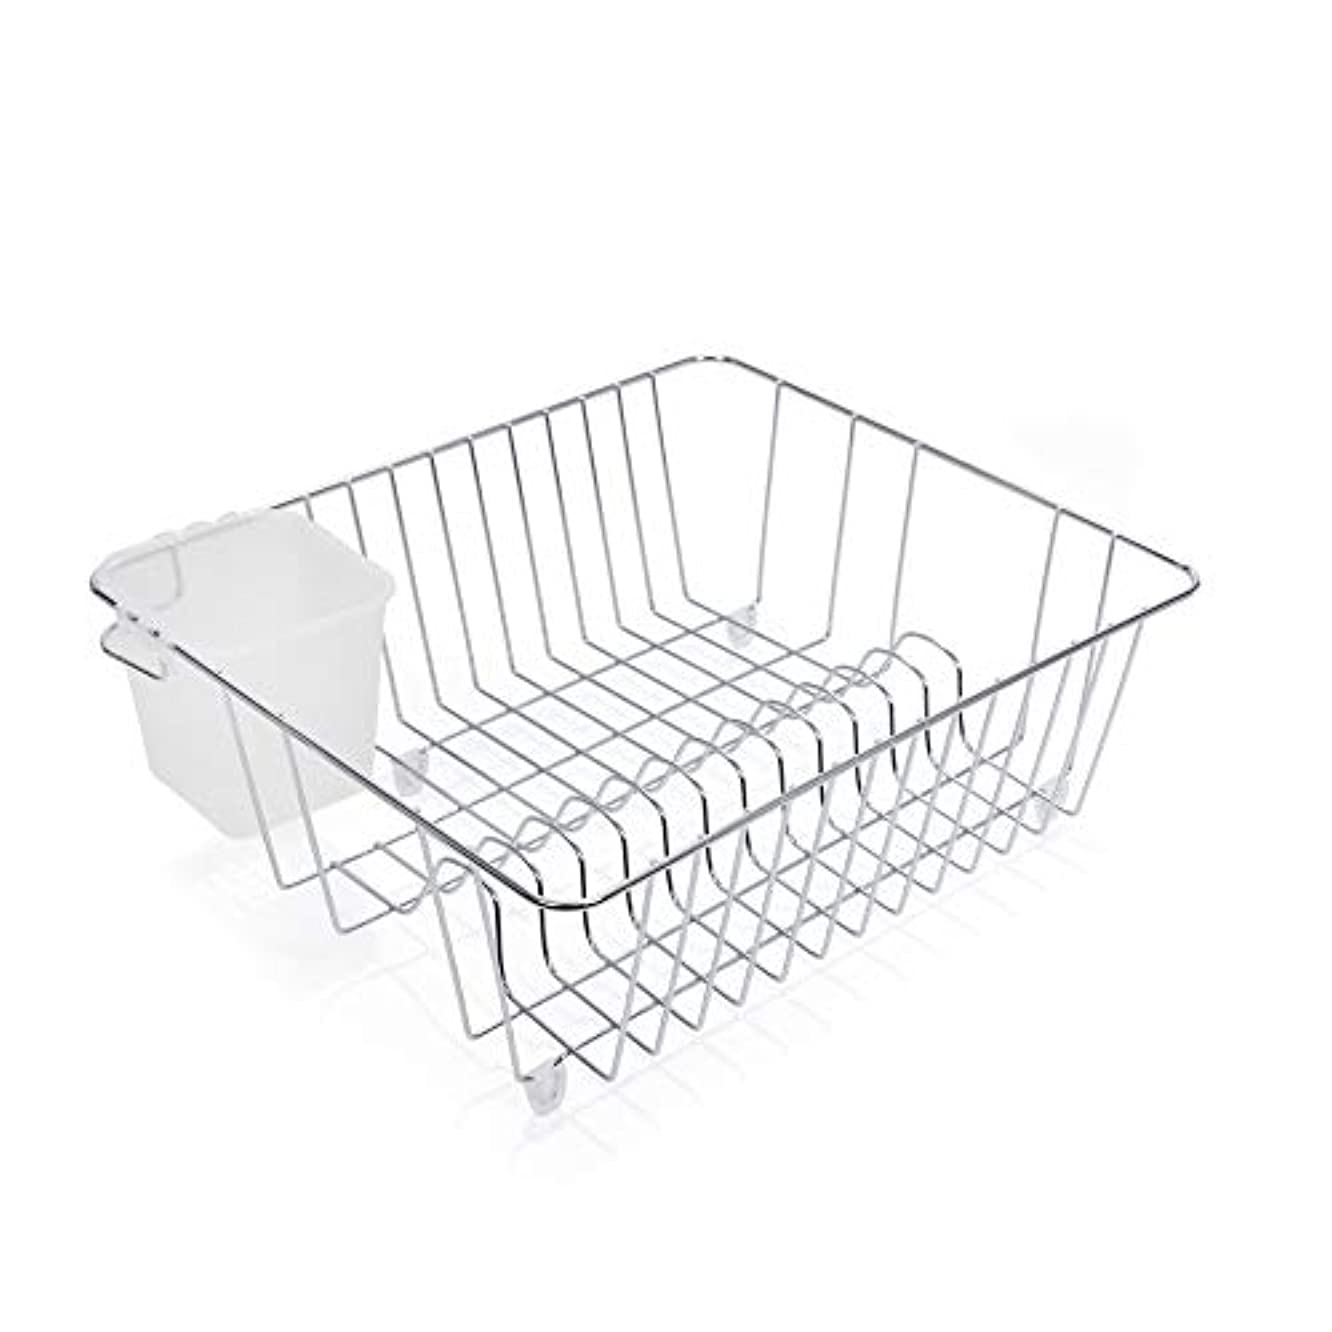 Smart Design Dish Drainer Rack w/ Cutlery Cup & Plate Dividers - Steel Metal Frame - Dishes, Cups, Silverware Organization - Kitchen (Chrome, Small - 14 x 5.5 Inch)